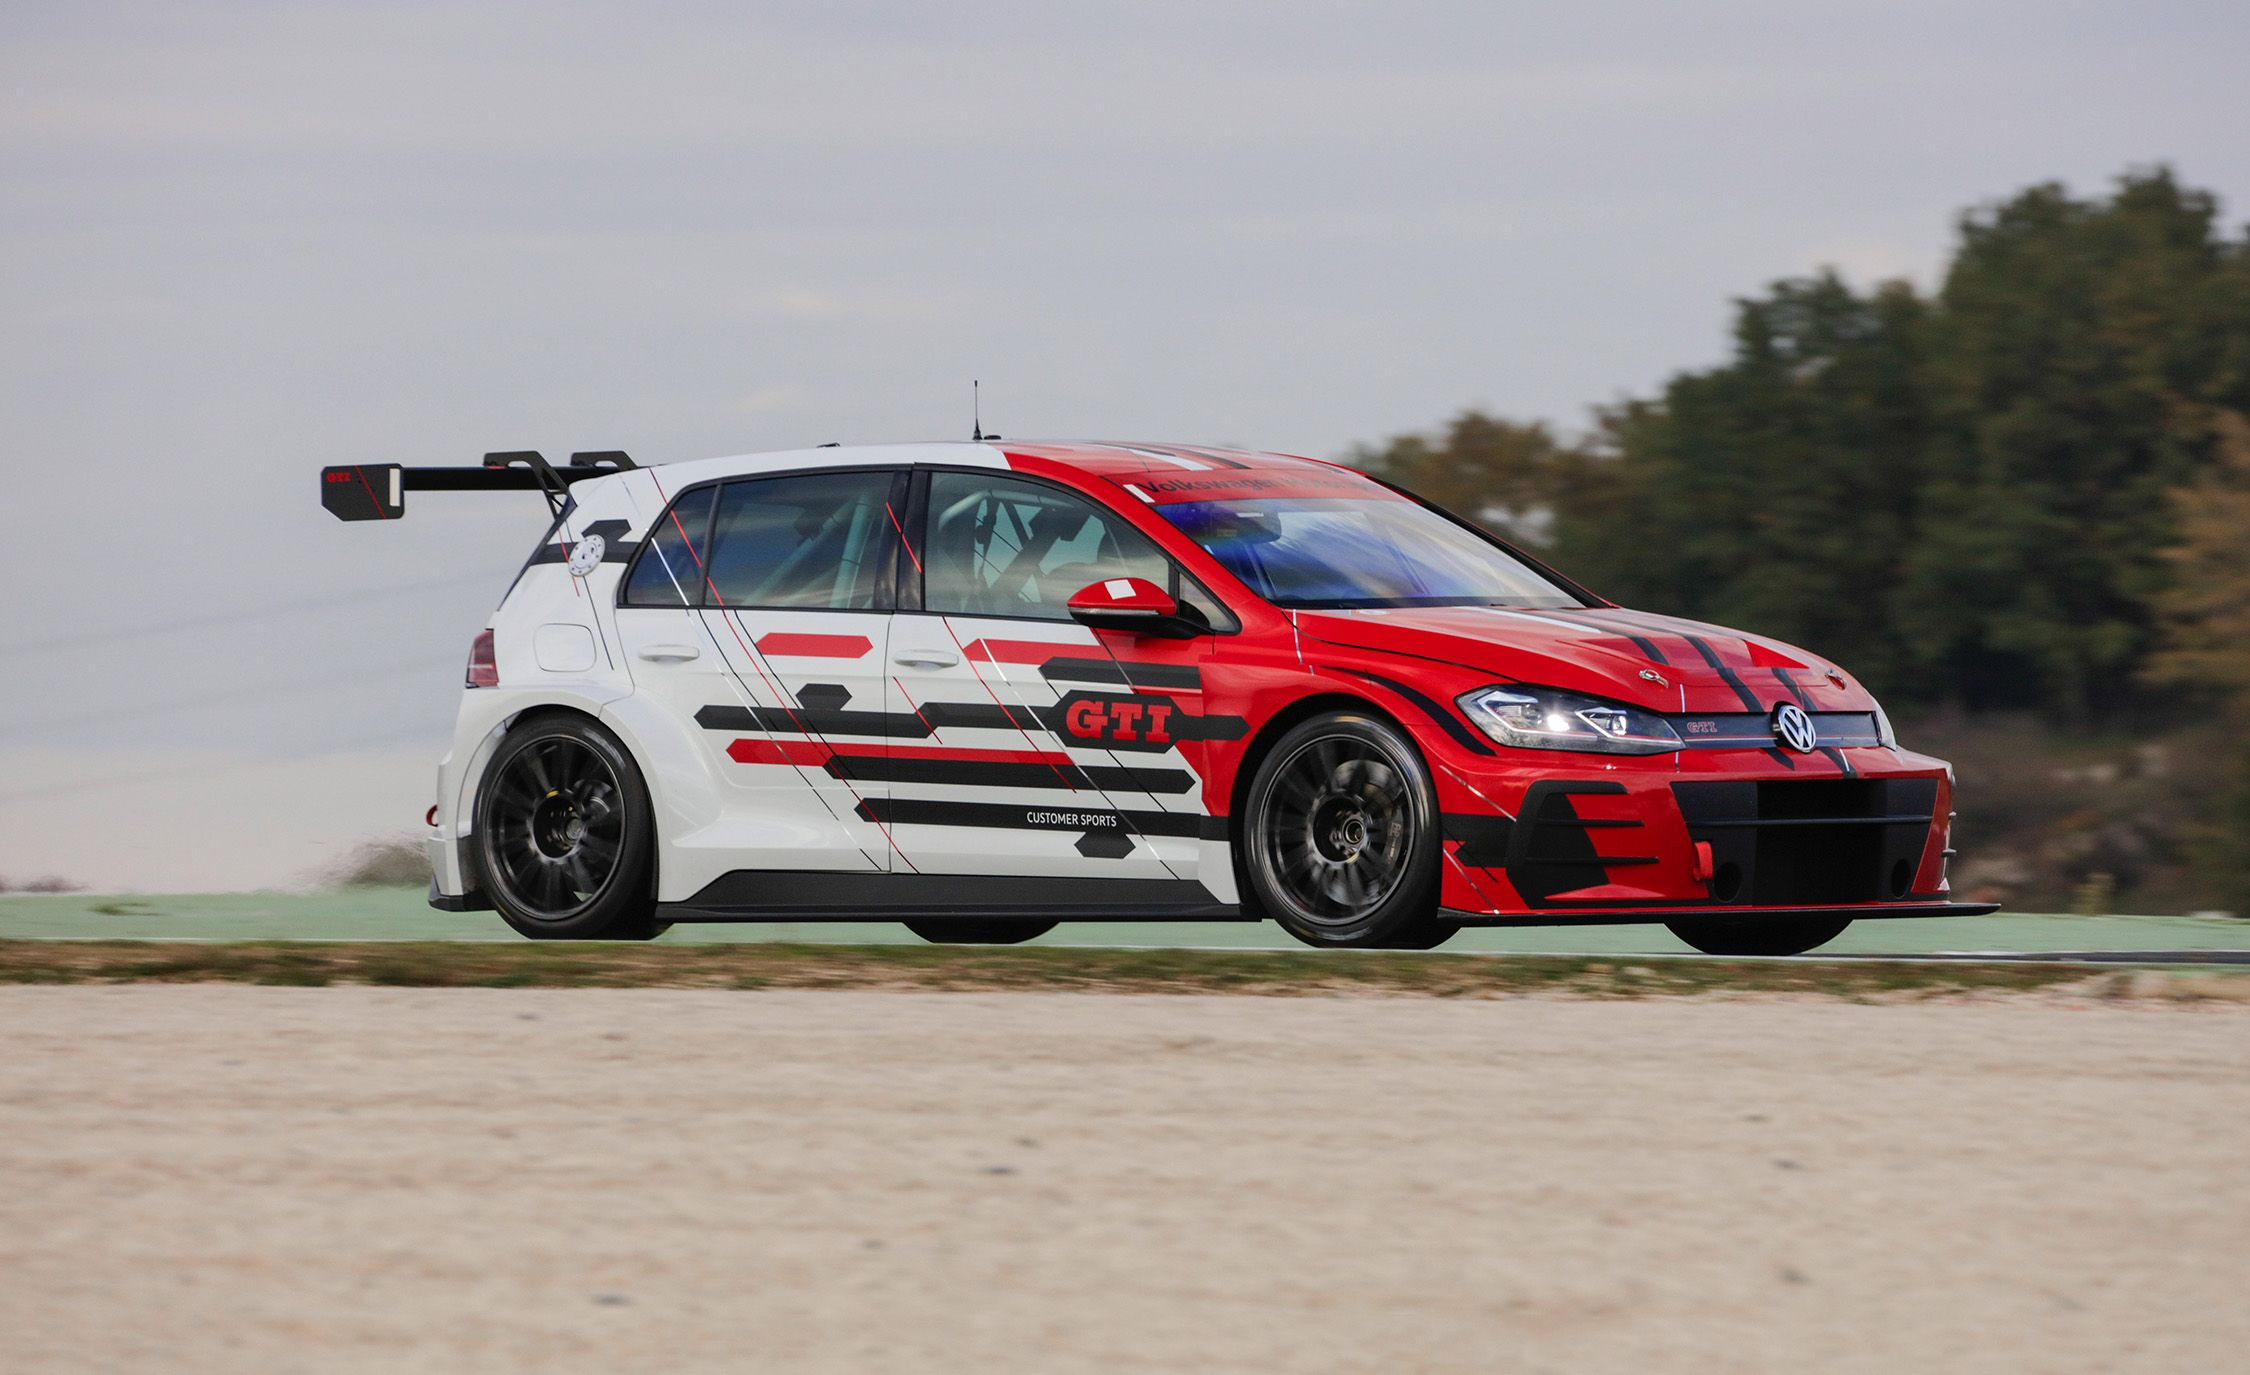 We Drive The Volkswagen Golf GTI TCR Race Car, The Coolest GTI Ever